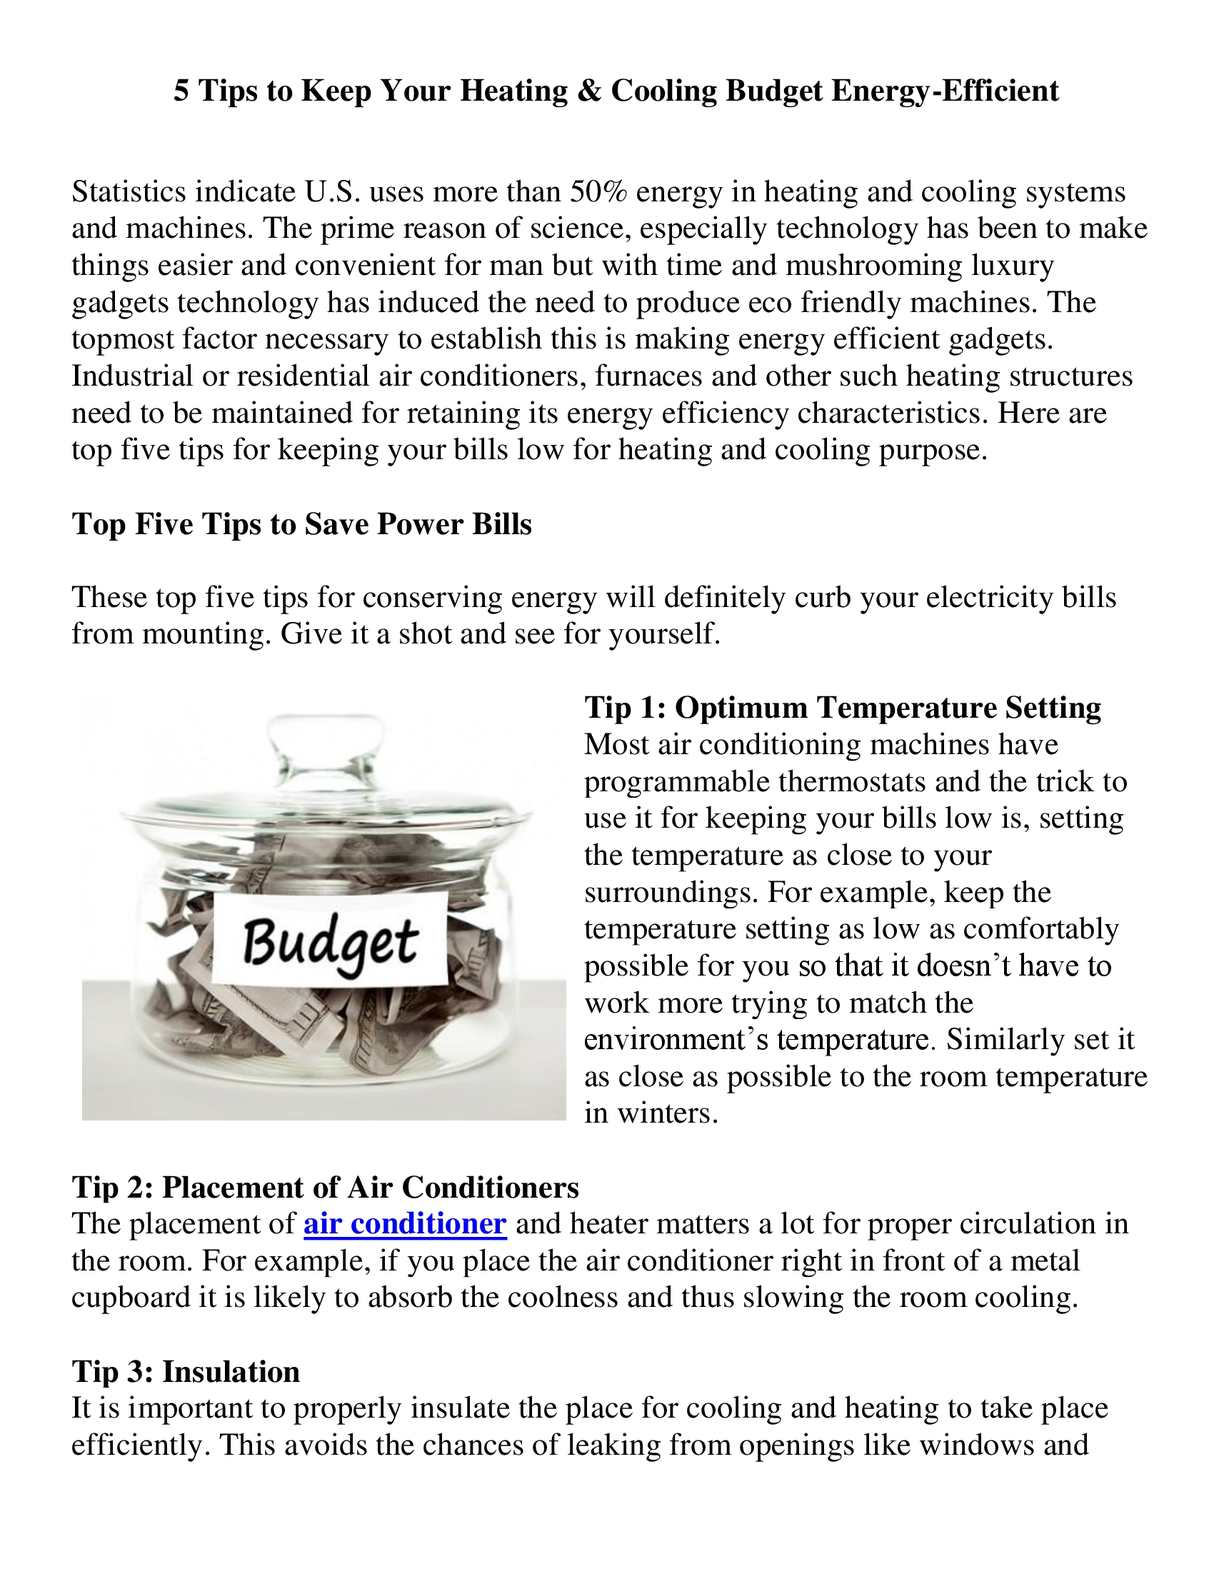 Calaméo - 5 Tips to Keep Your Heating & Cooling Budget